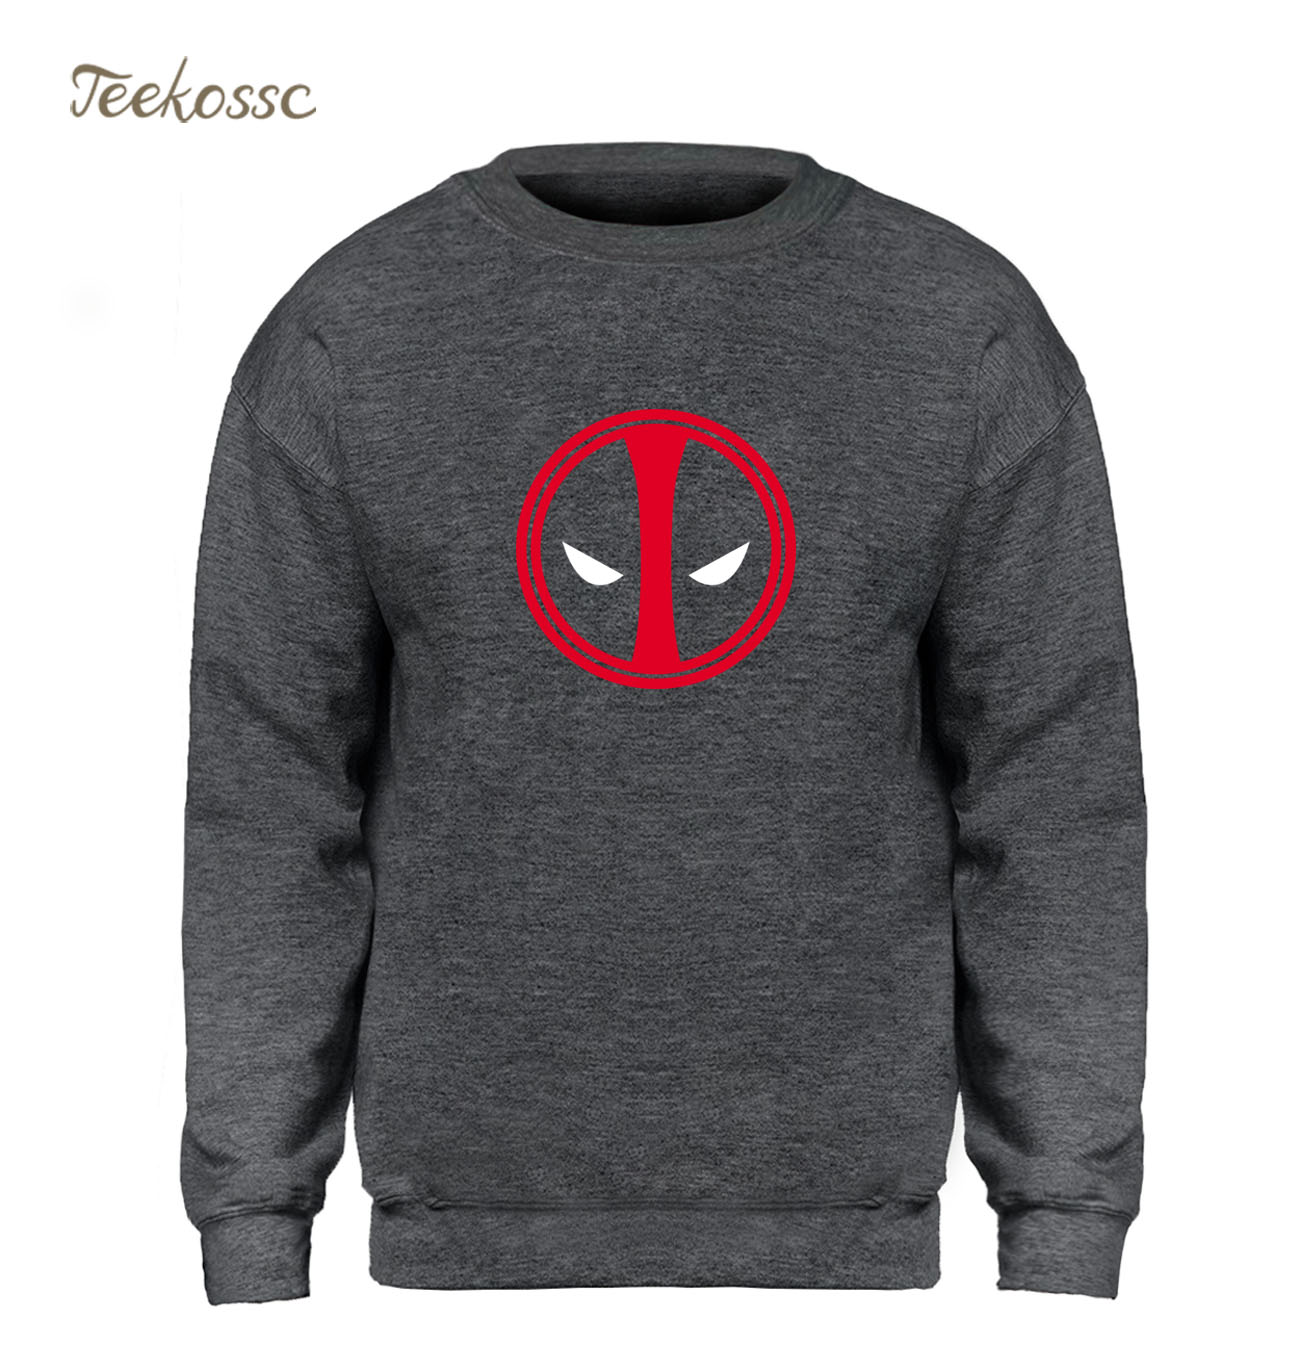 Deadpool Costume X-men Black Hoodie Men Super Hero Sweatshirt Cool Sweatshirts 2018 Winter Autumn Fleece Warm Printed Streetwear